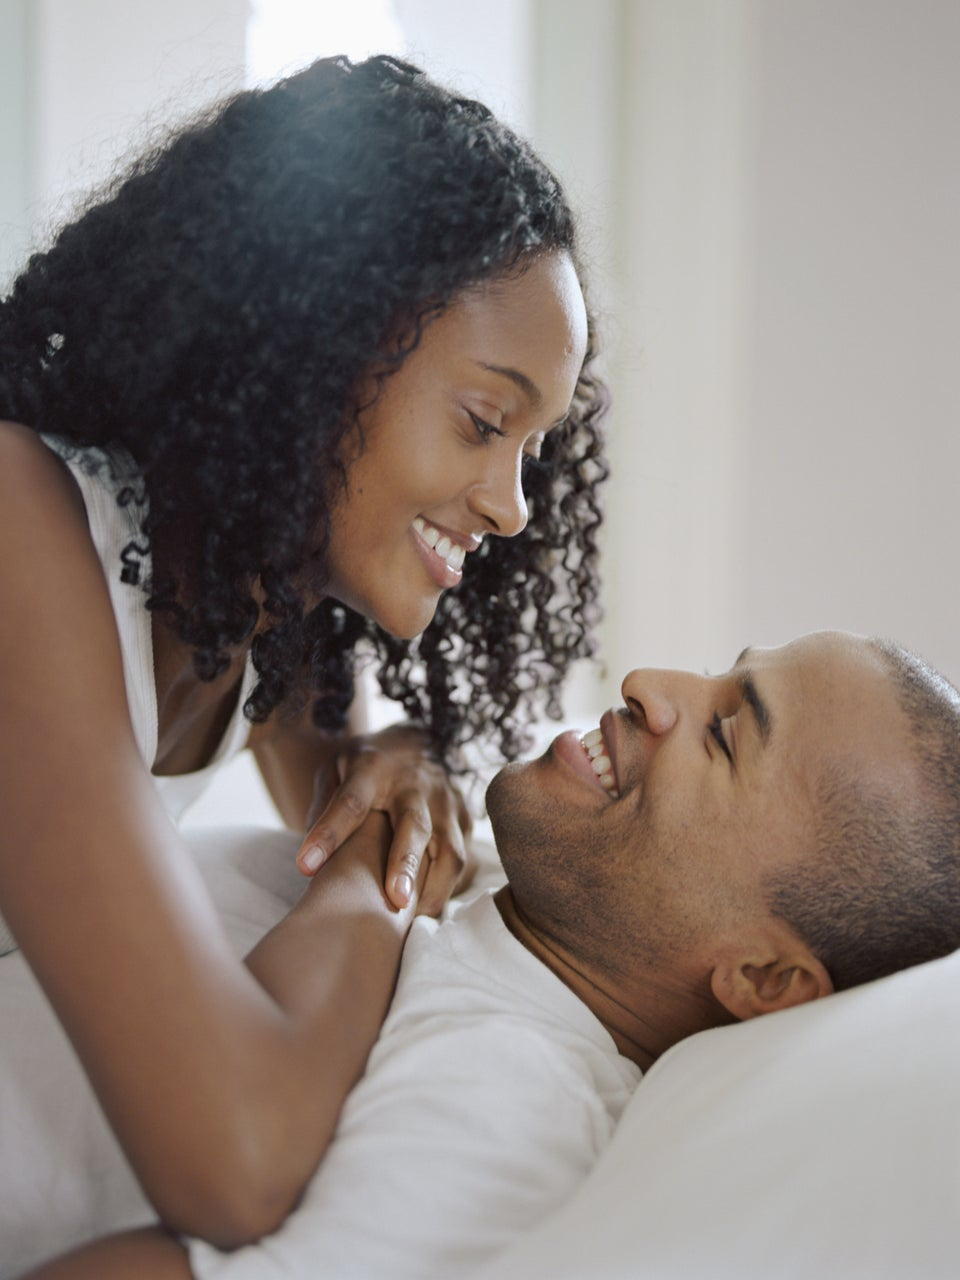 How Happy People Make Their Spouses Healthier